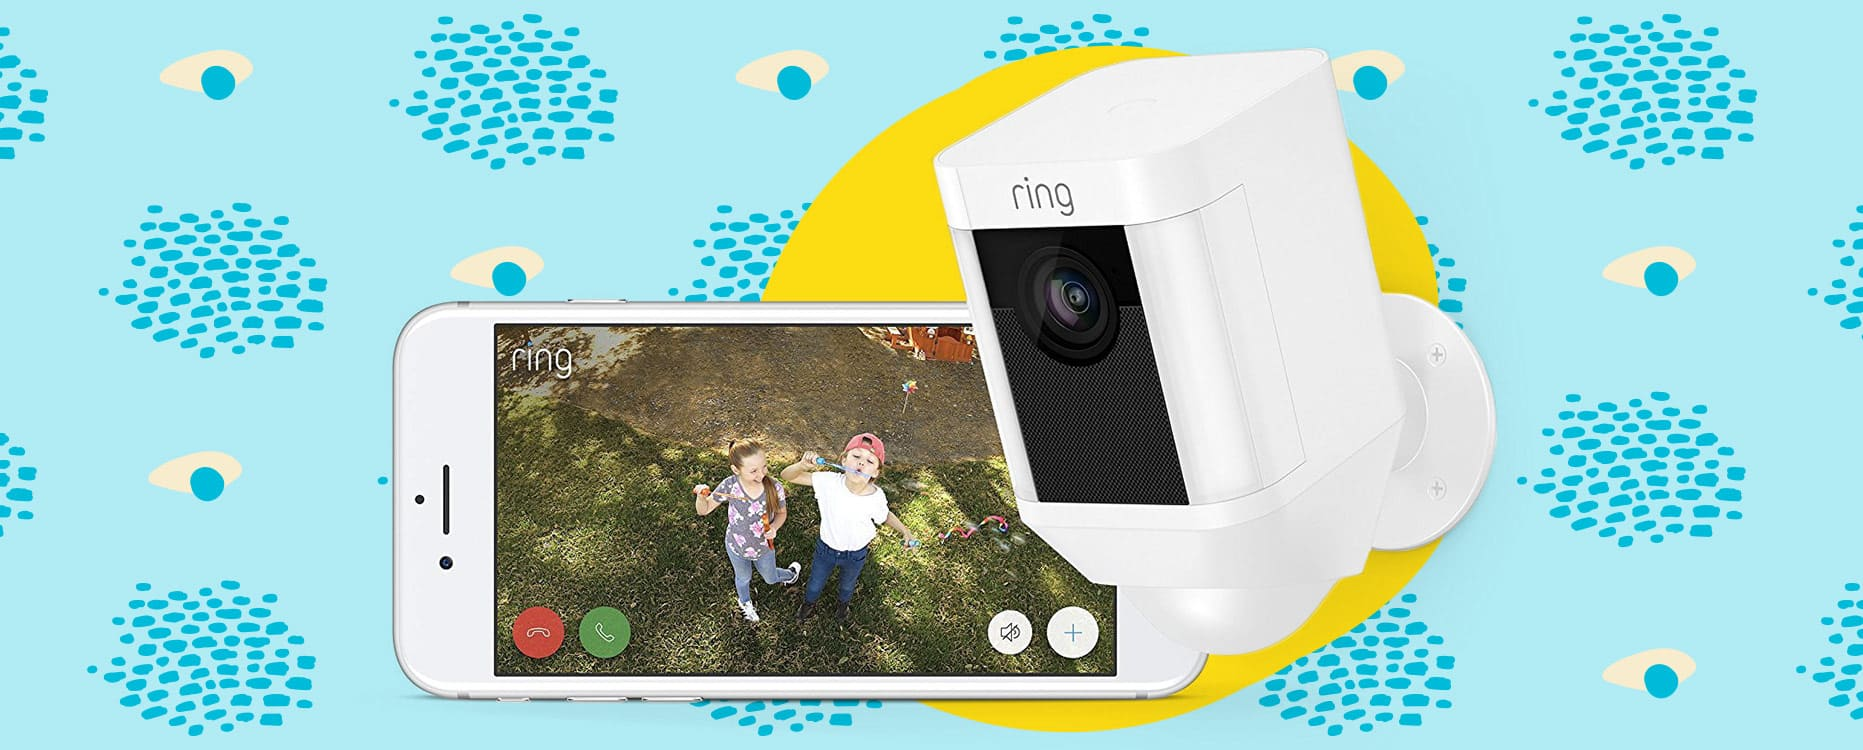 Amazon Treasure Truck (ATLANTA & other areas) - Ring Spotlight Cam Battery HD Security Camera (30% off!) -$139 (YMMV)